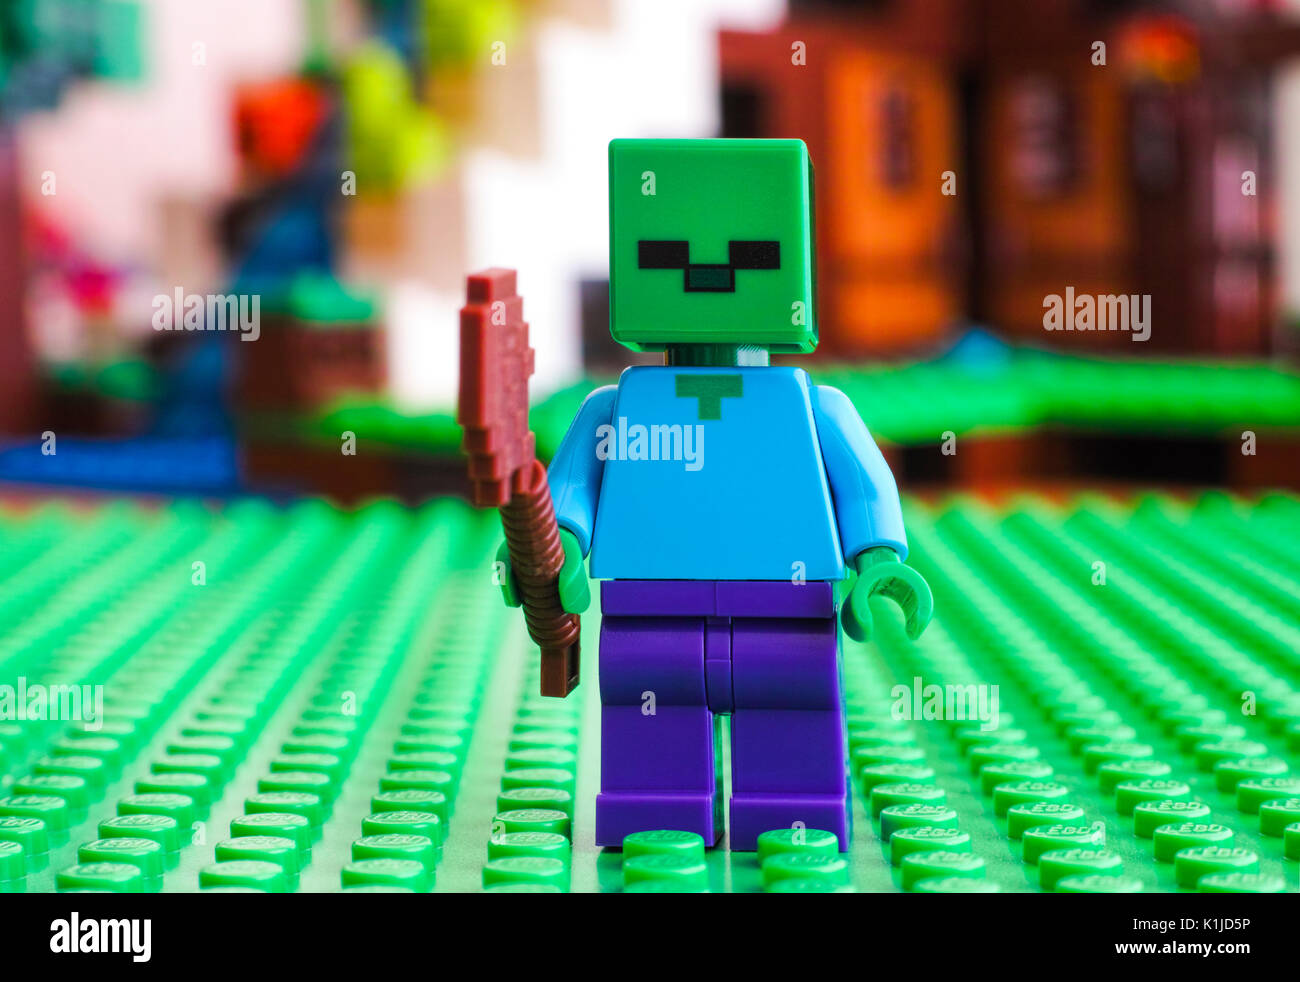 minecraft stock photos minecraft